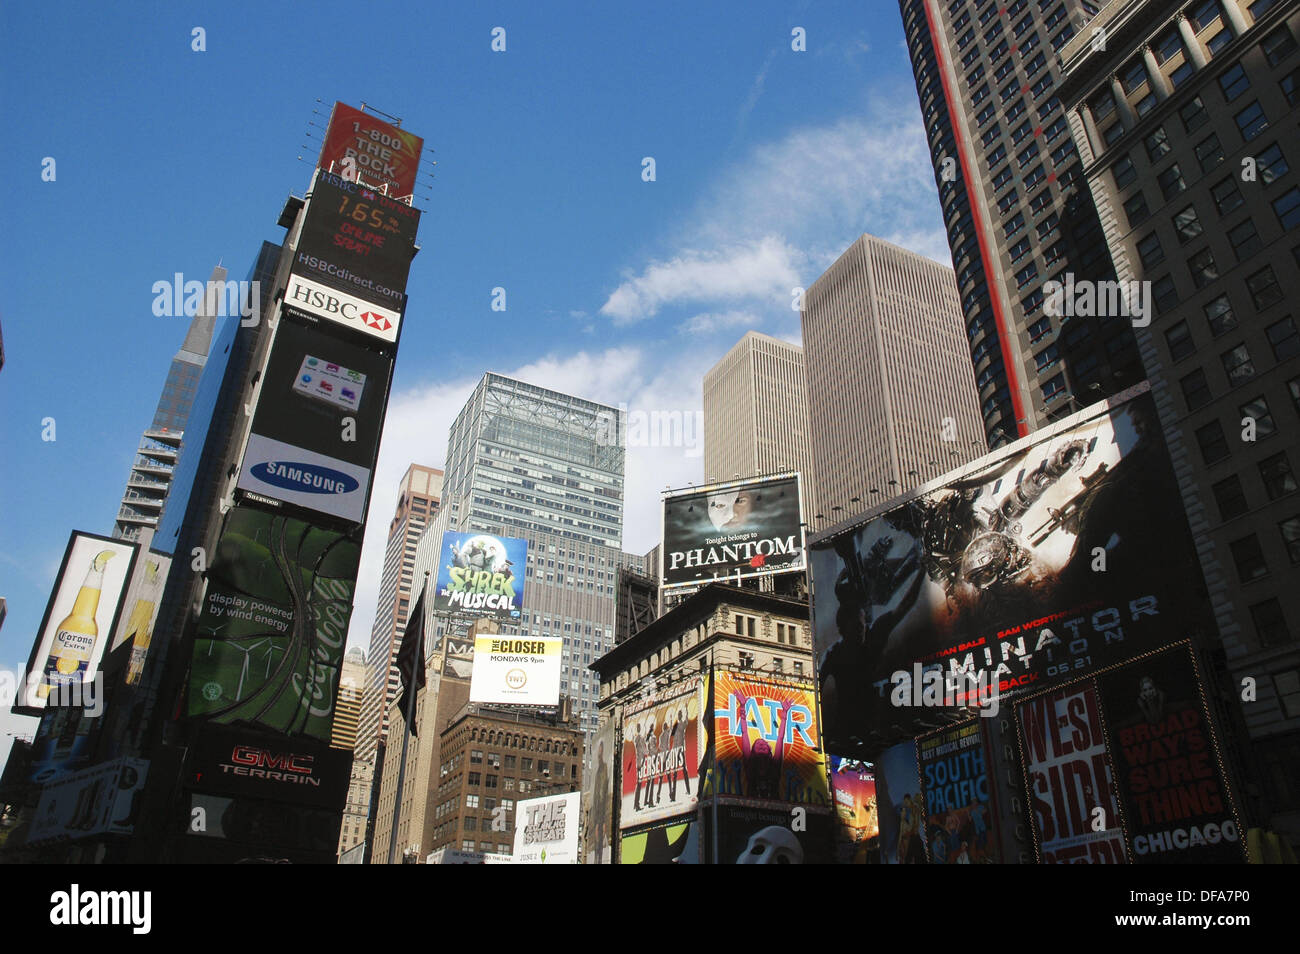 New York City (USA): skyscrapers and ads in Times Square - Stock Image